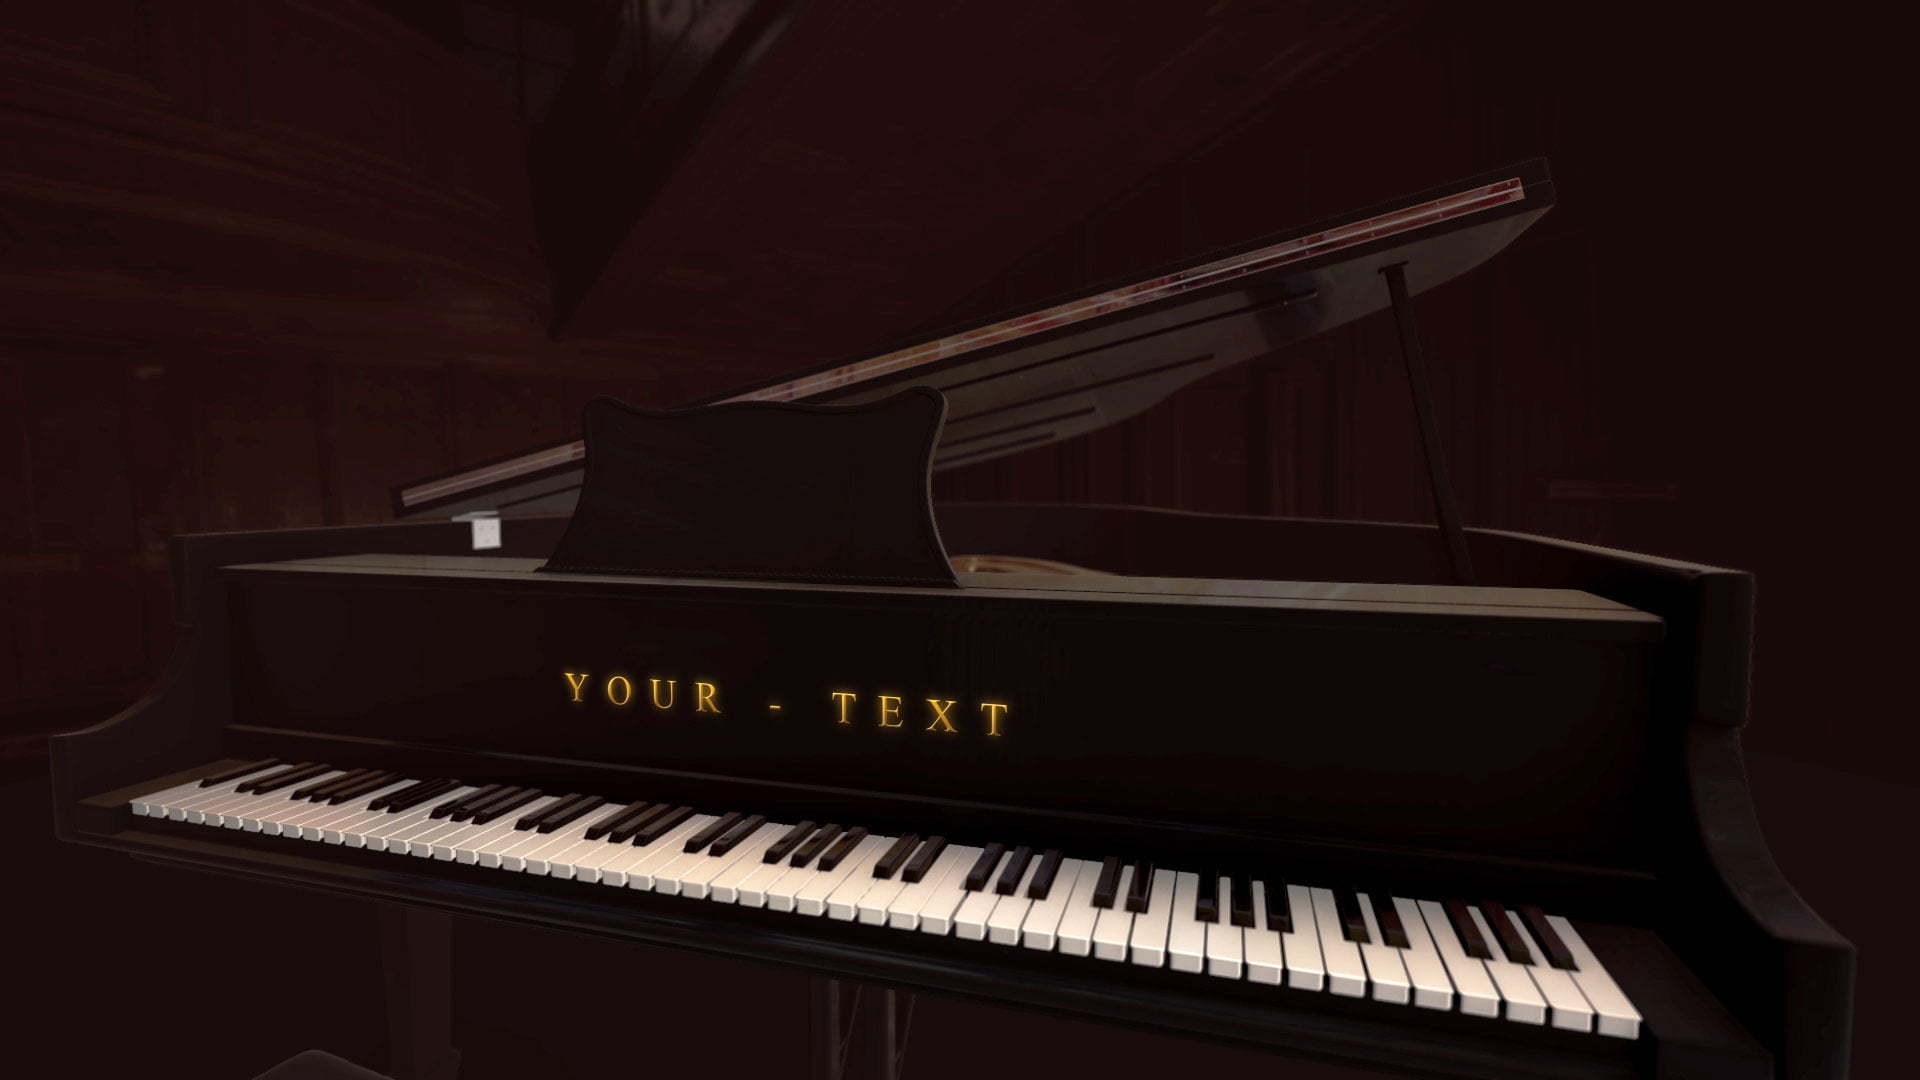 piano-screenshot2.jpg